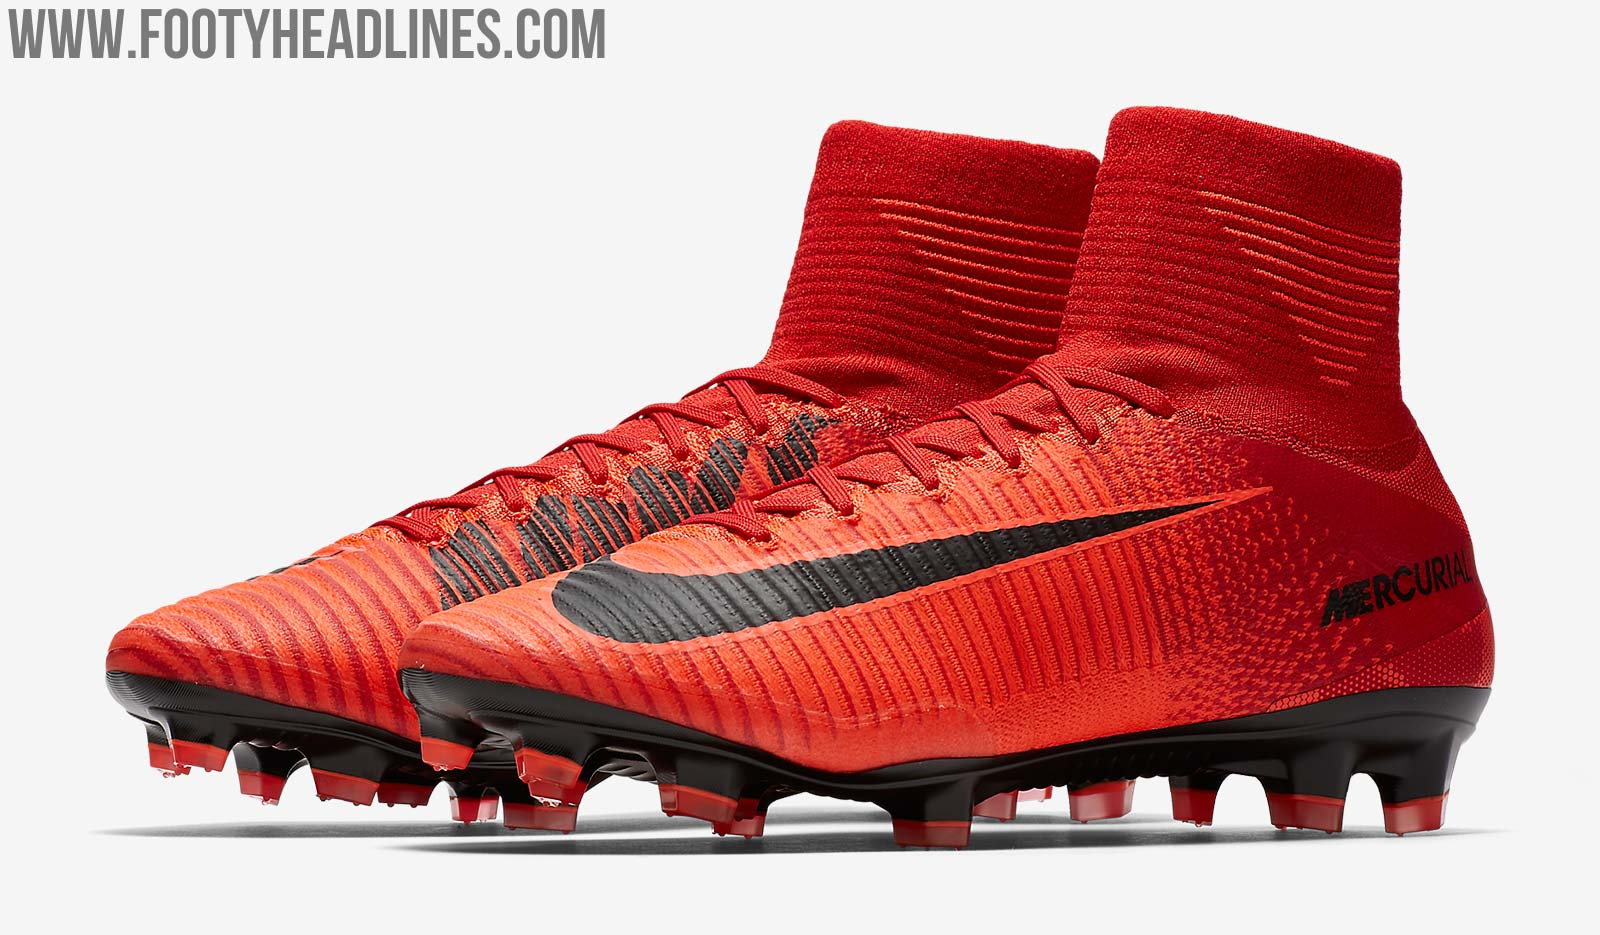 nike mercurial superfly v fire pack boots revealed footy. Black Bedroom Furniture Sets. Home Design Ideas